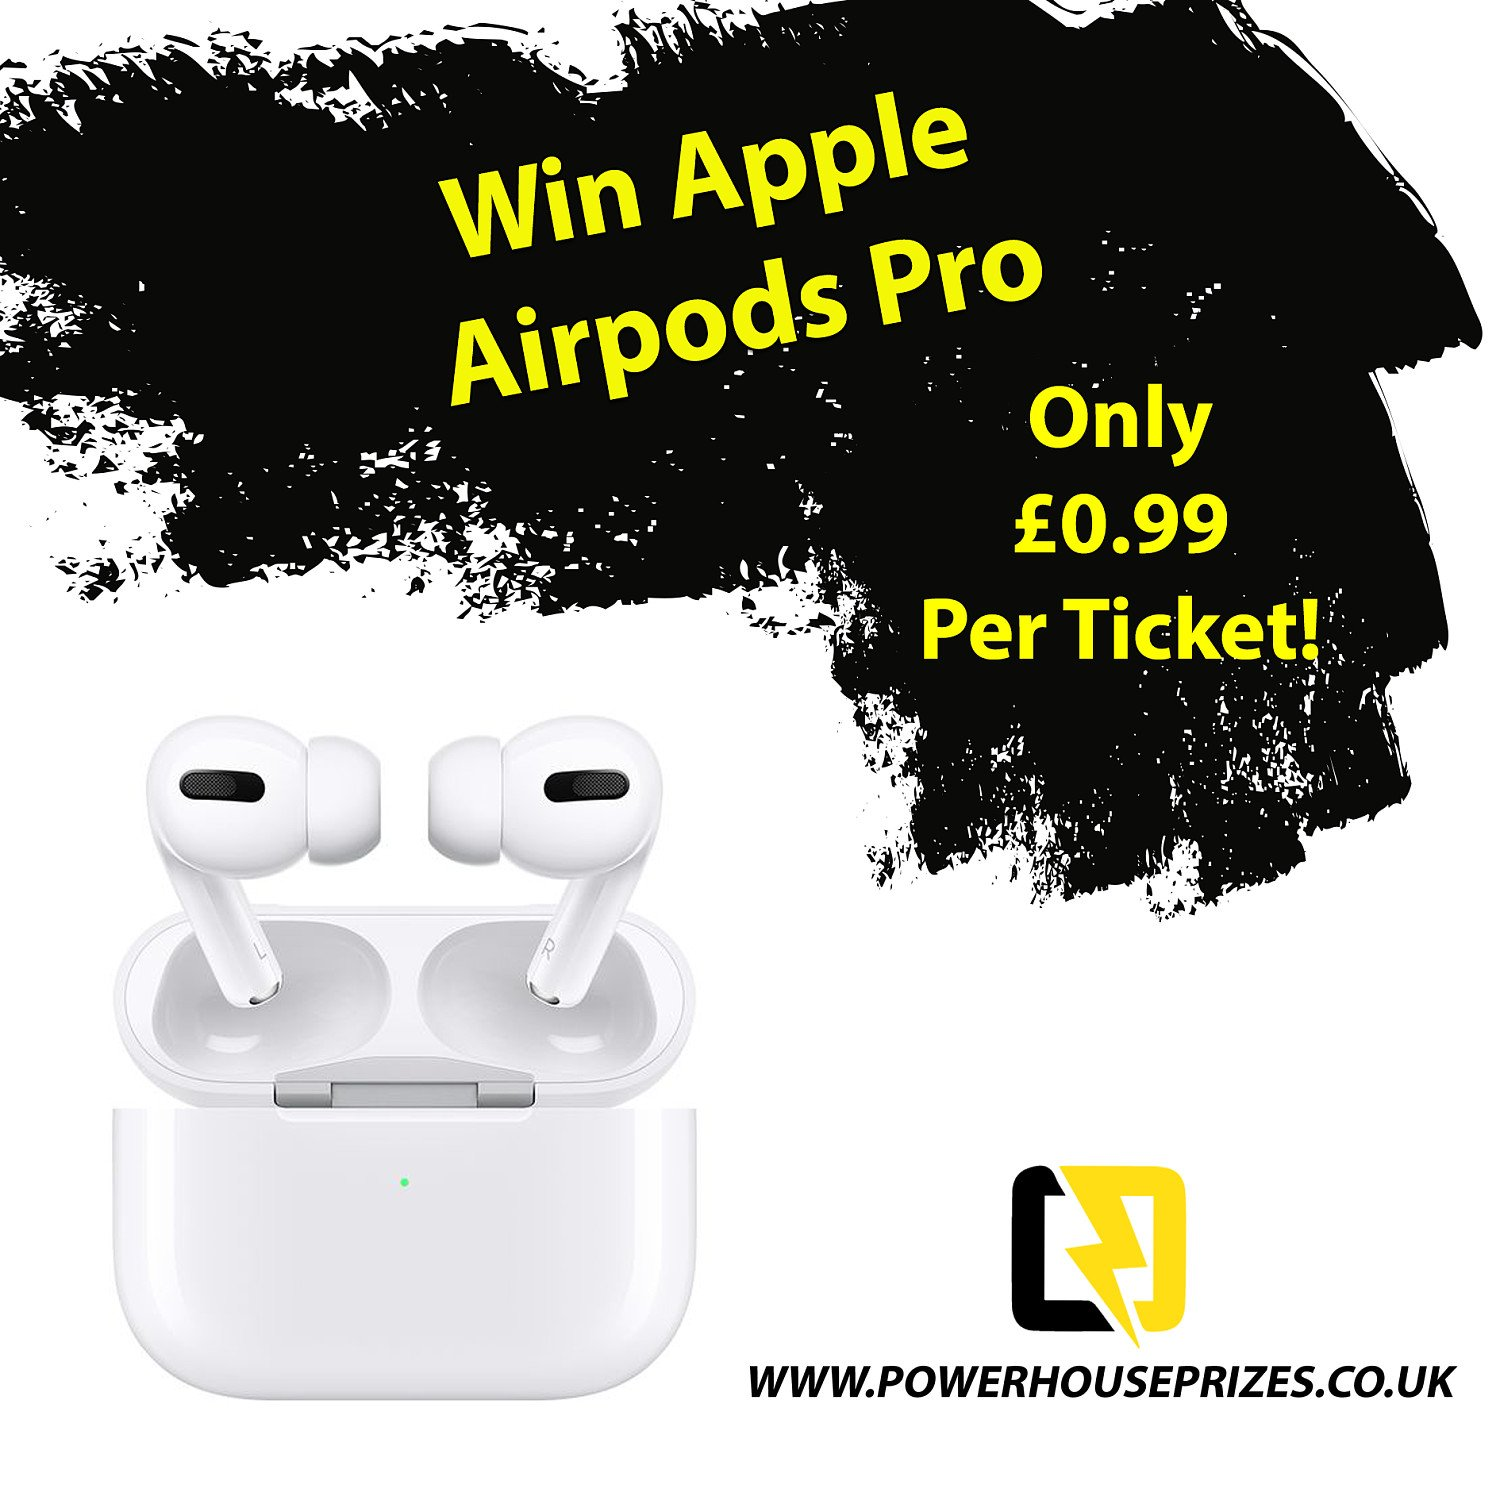 Win A Pair of Airpods Pro!